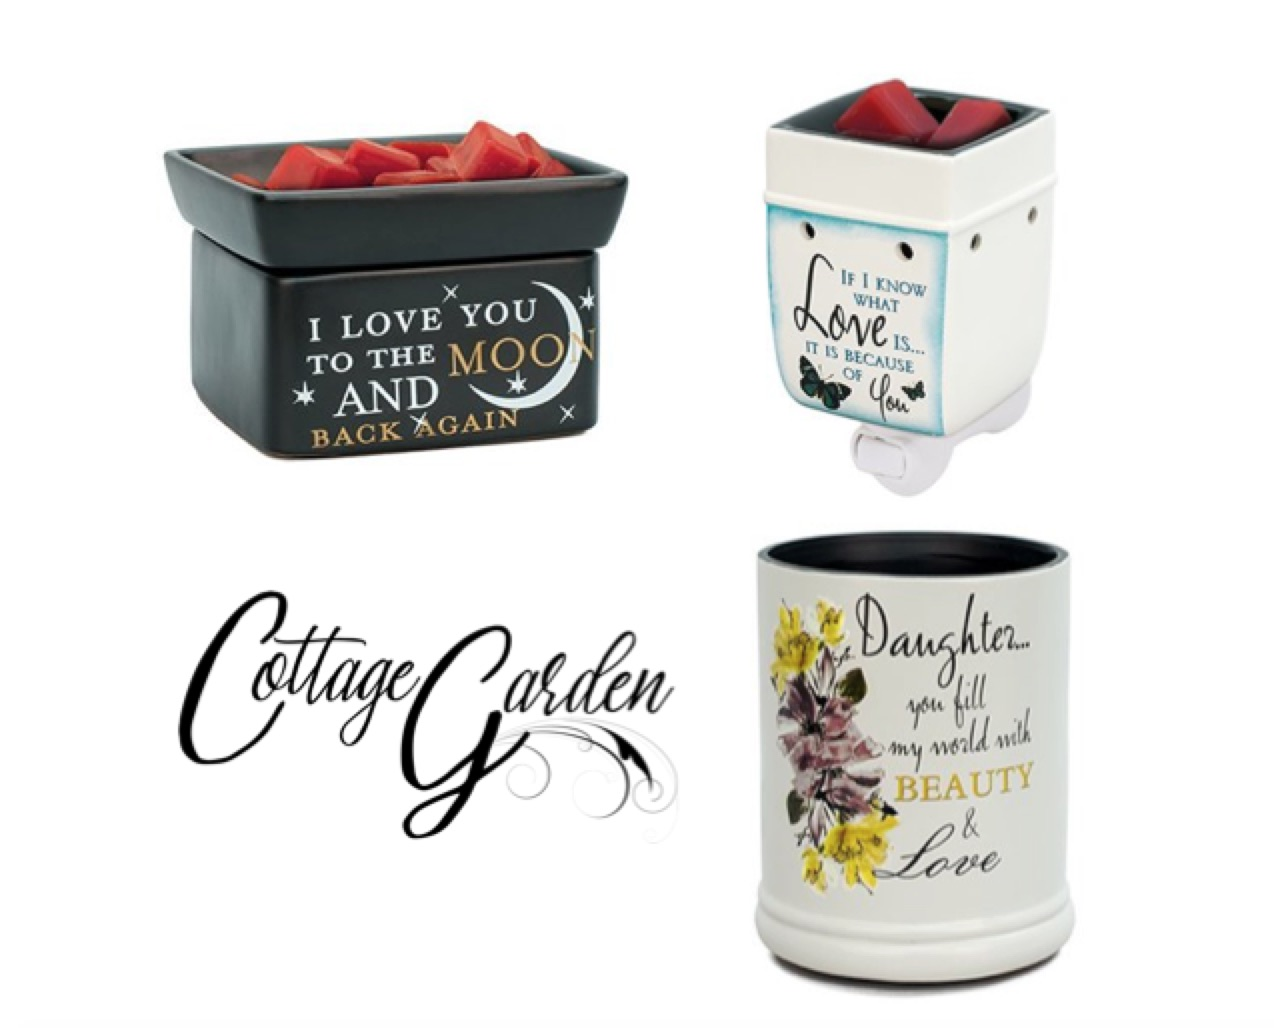 Cottage Garden Candle Warmers, Hallmark Awesome Gifts